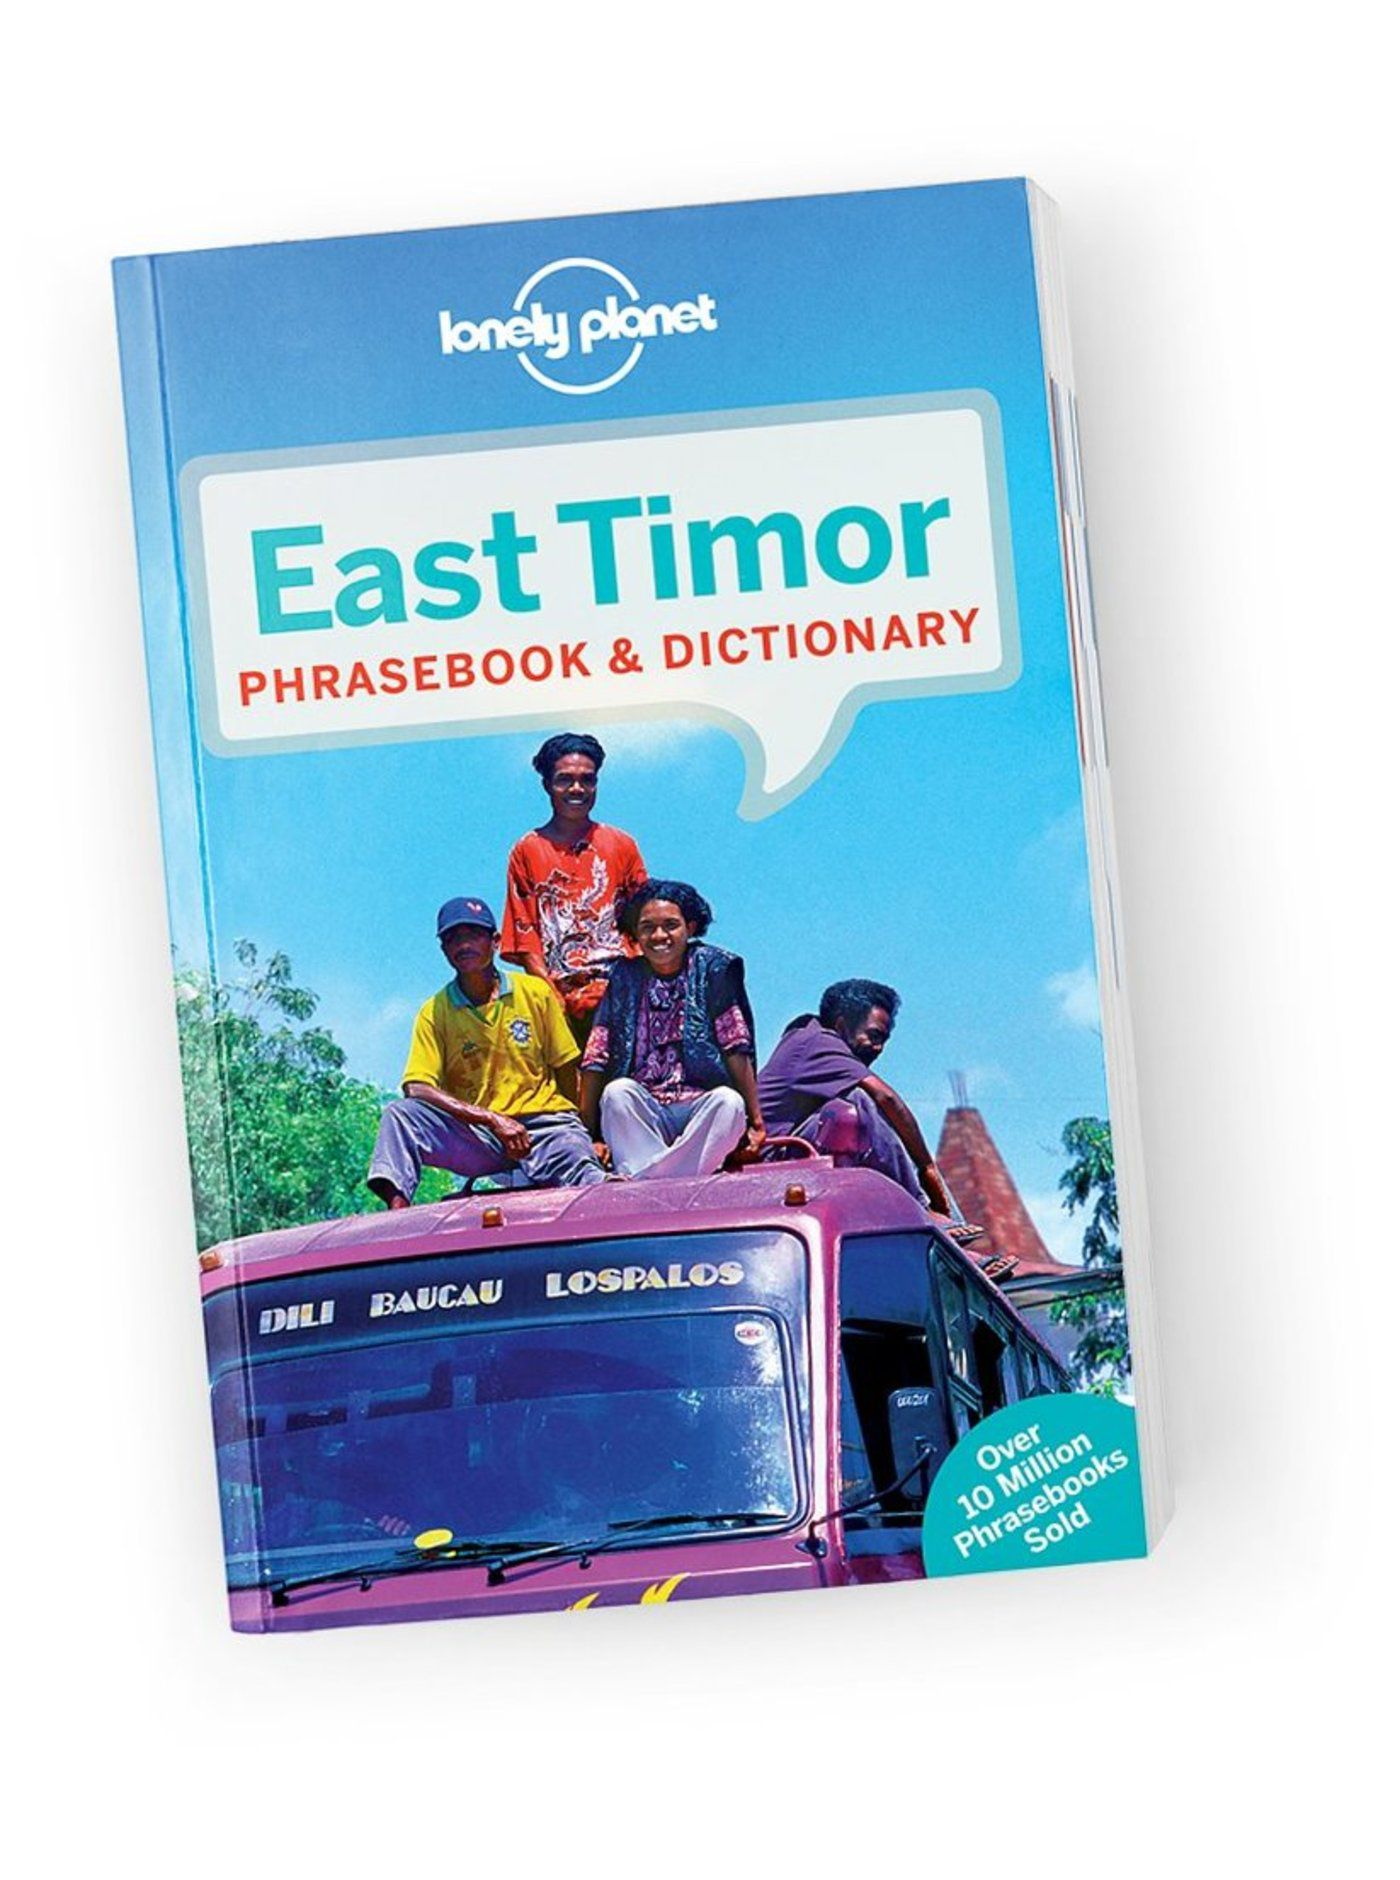 East Timor Phrasebook & Dictionary